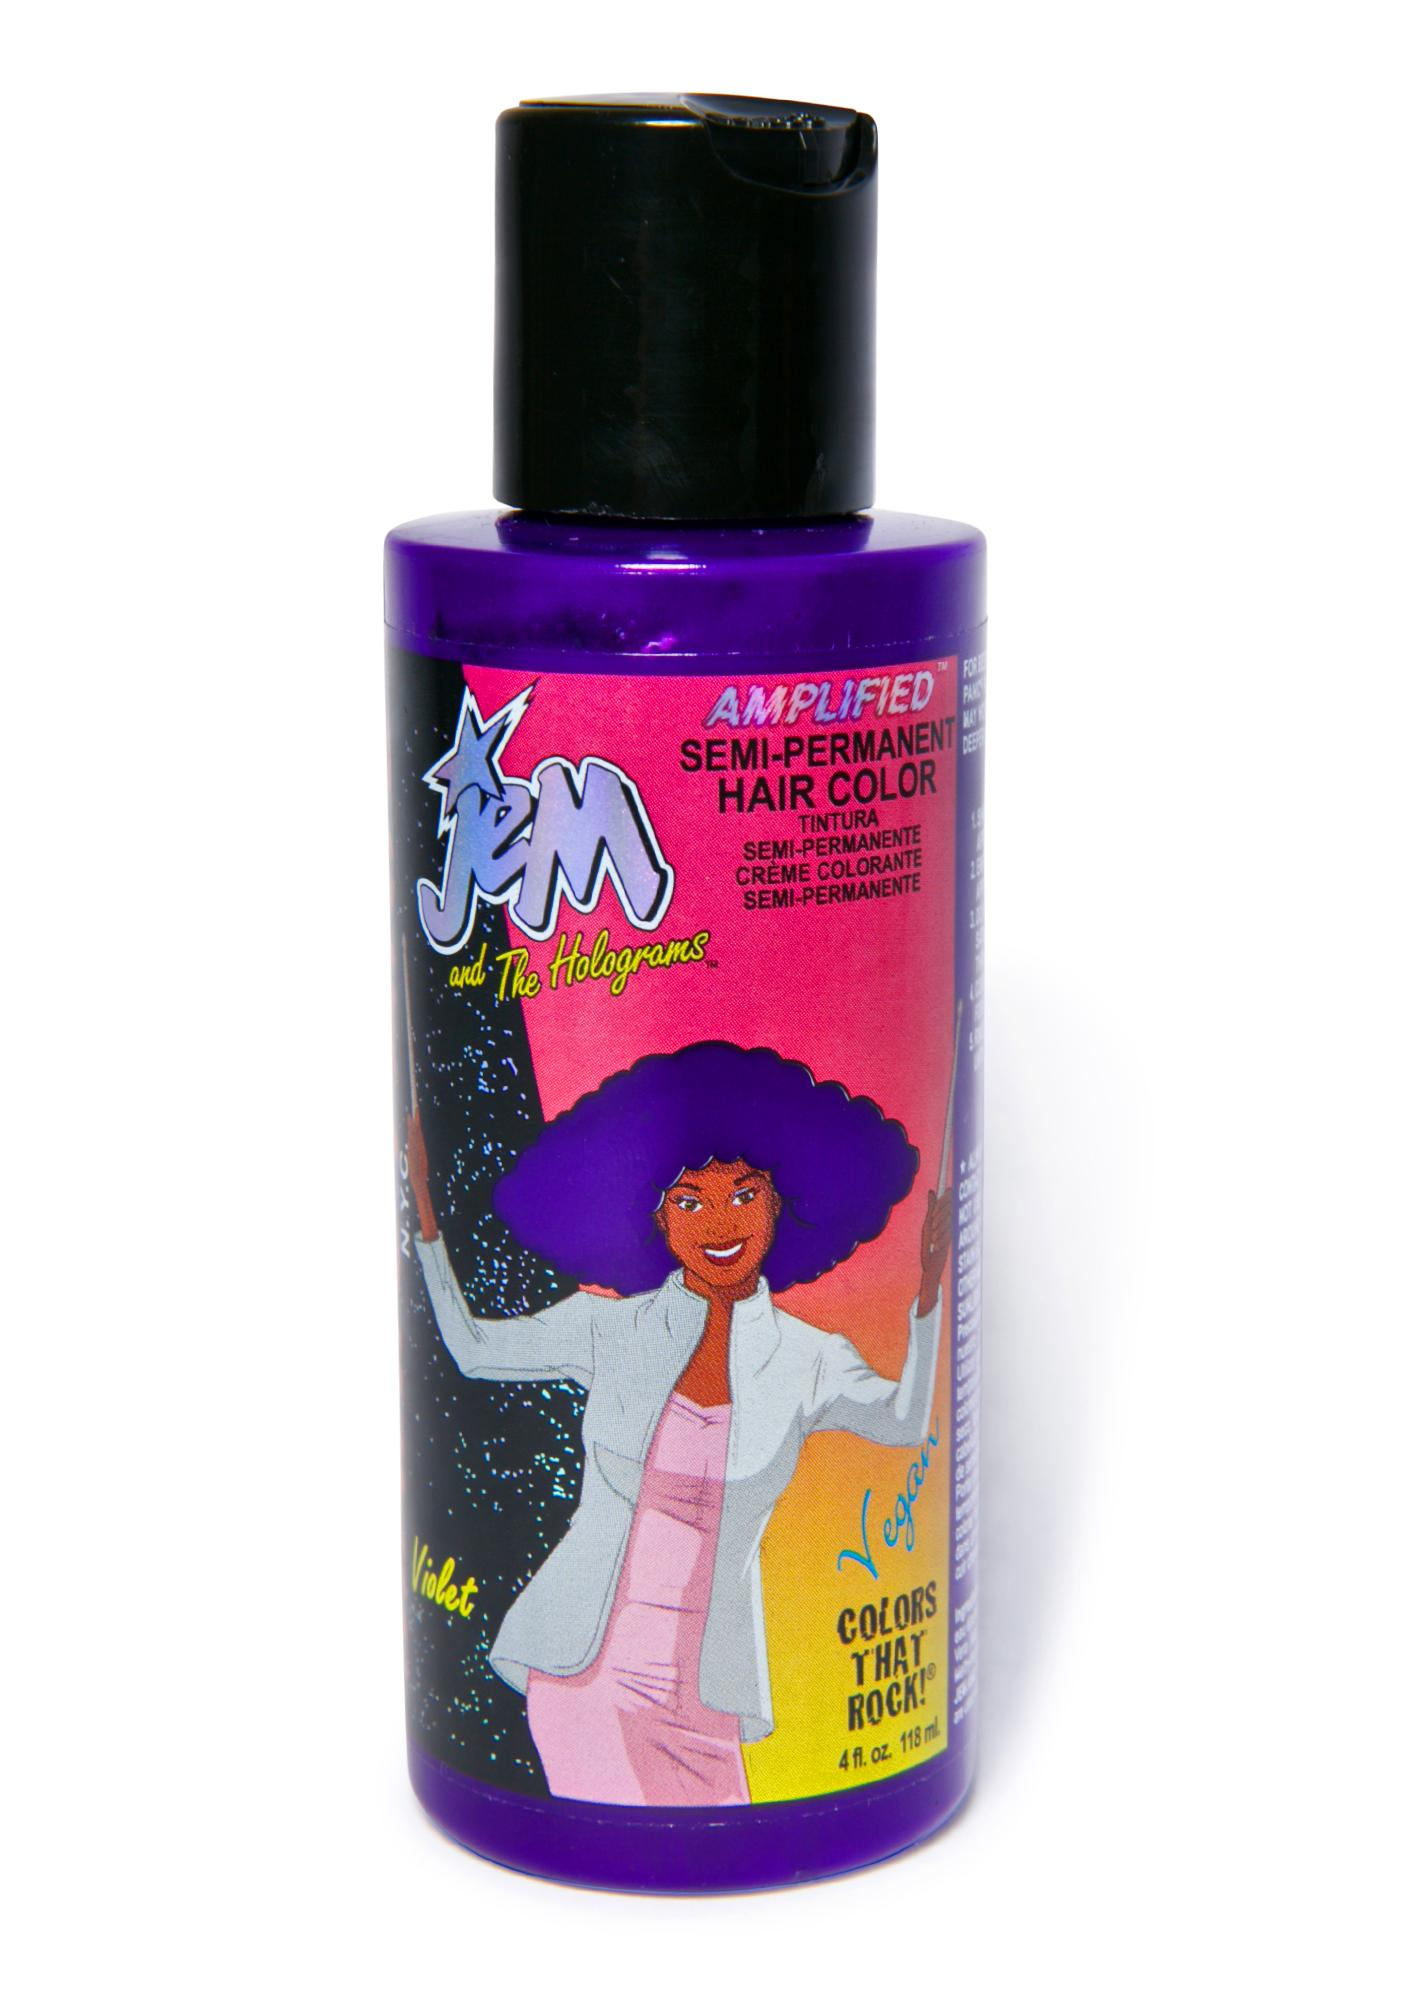 Manic Panic JEM Amplified Violet Hair Dye